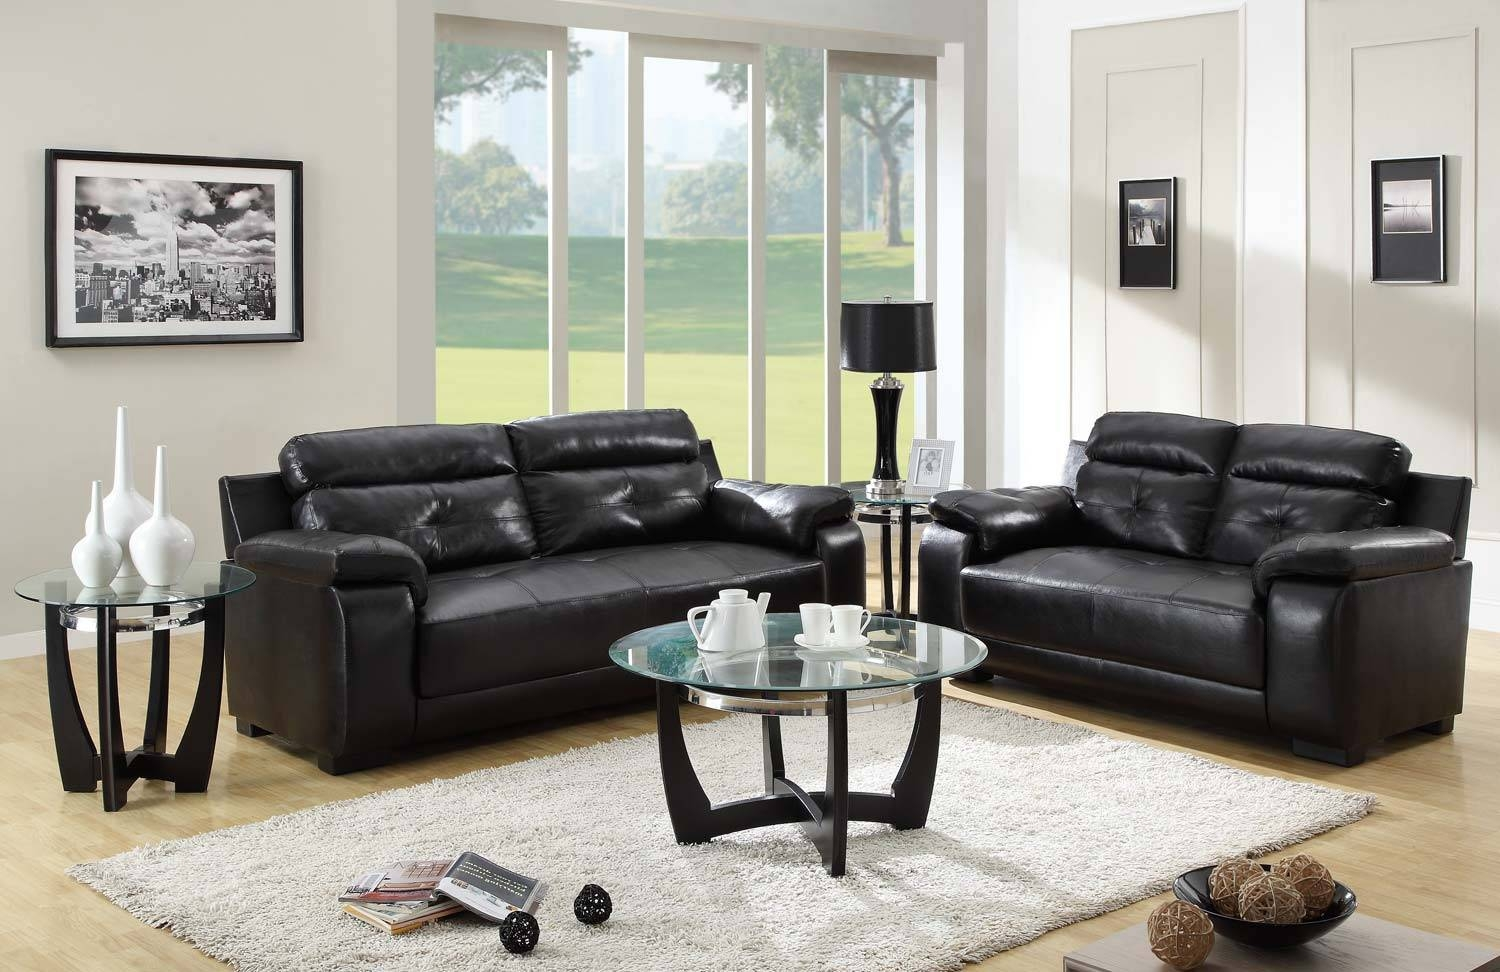 Diana Dark Brown Leather Sectional Sofa Set | Goodca Sofa in Diana Dark Brown Leather Sectional Sofa Set (Image 21 of 30)